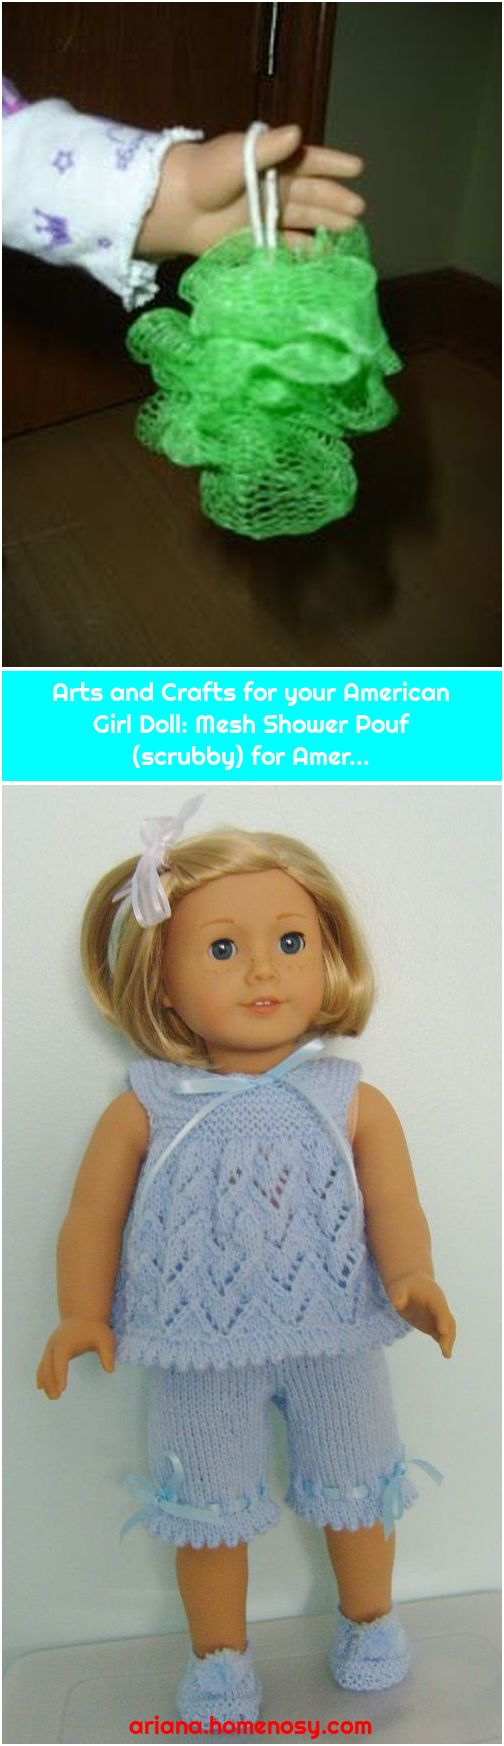 Arts and Crafts for your American Girl Doll: Mesh Shower Pouf (scrubby) for Amer...